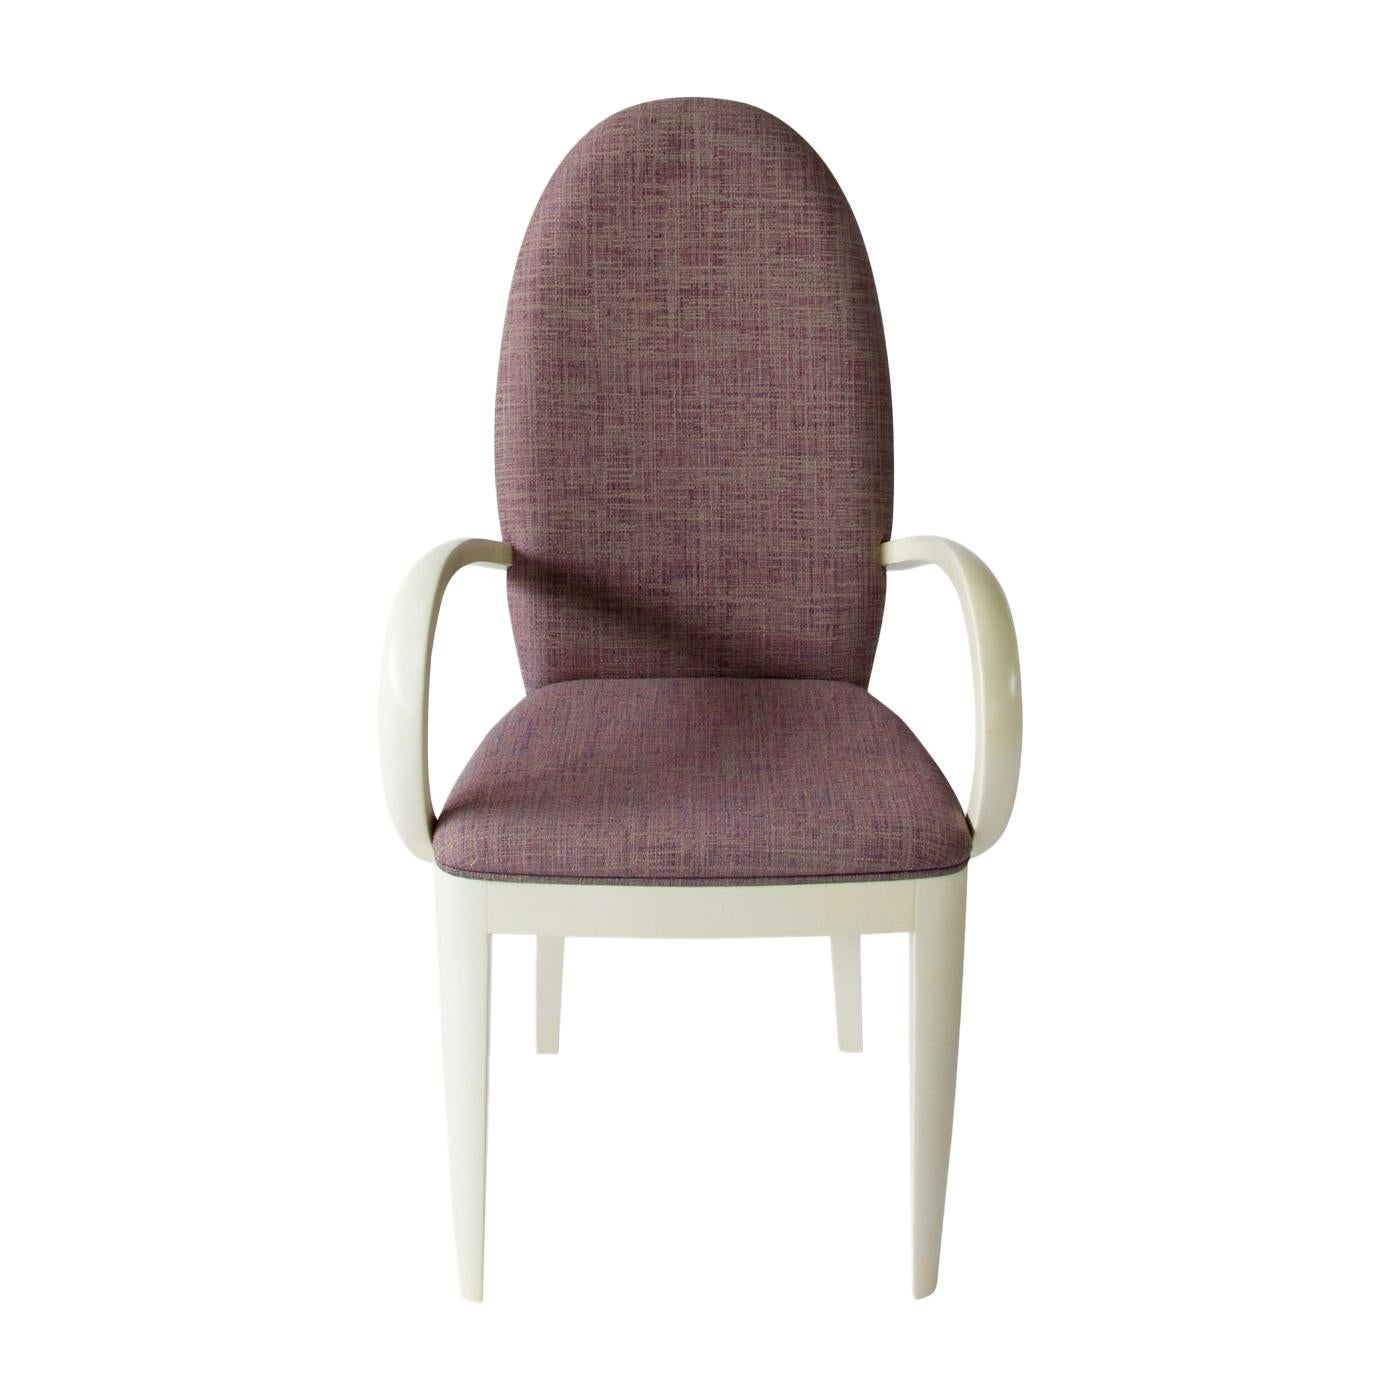 M&M Chair with Armrests